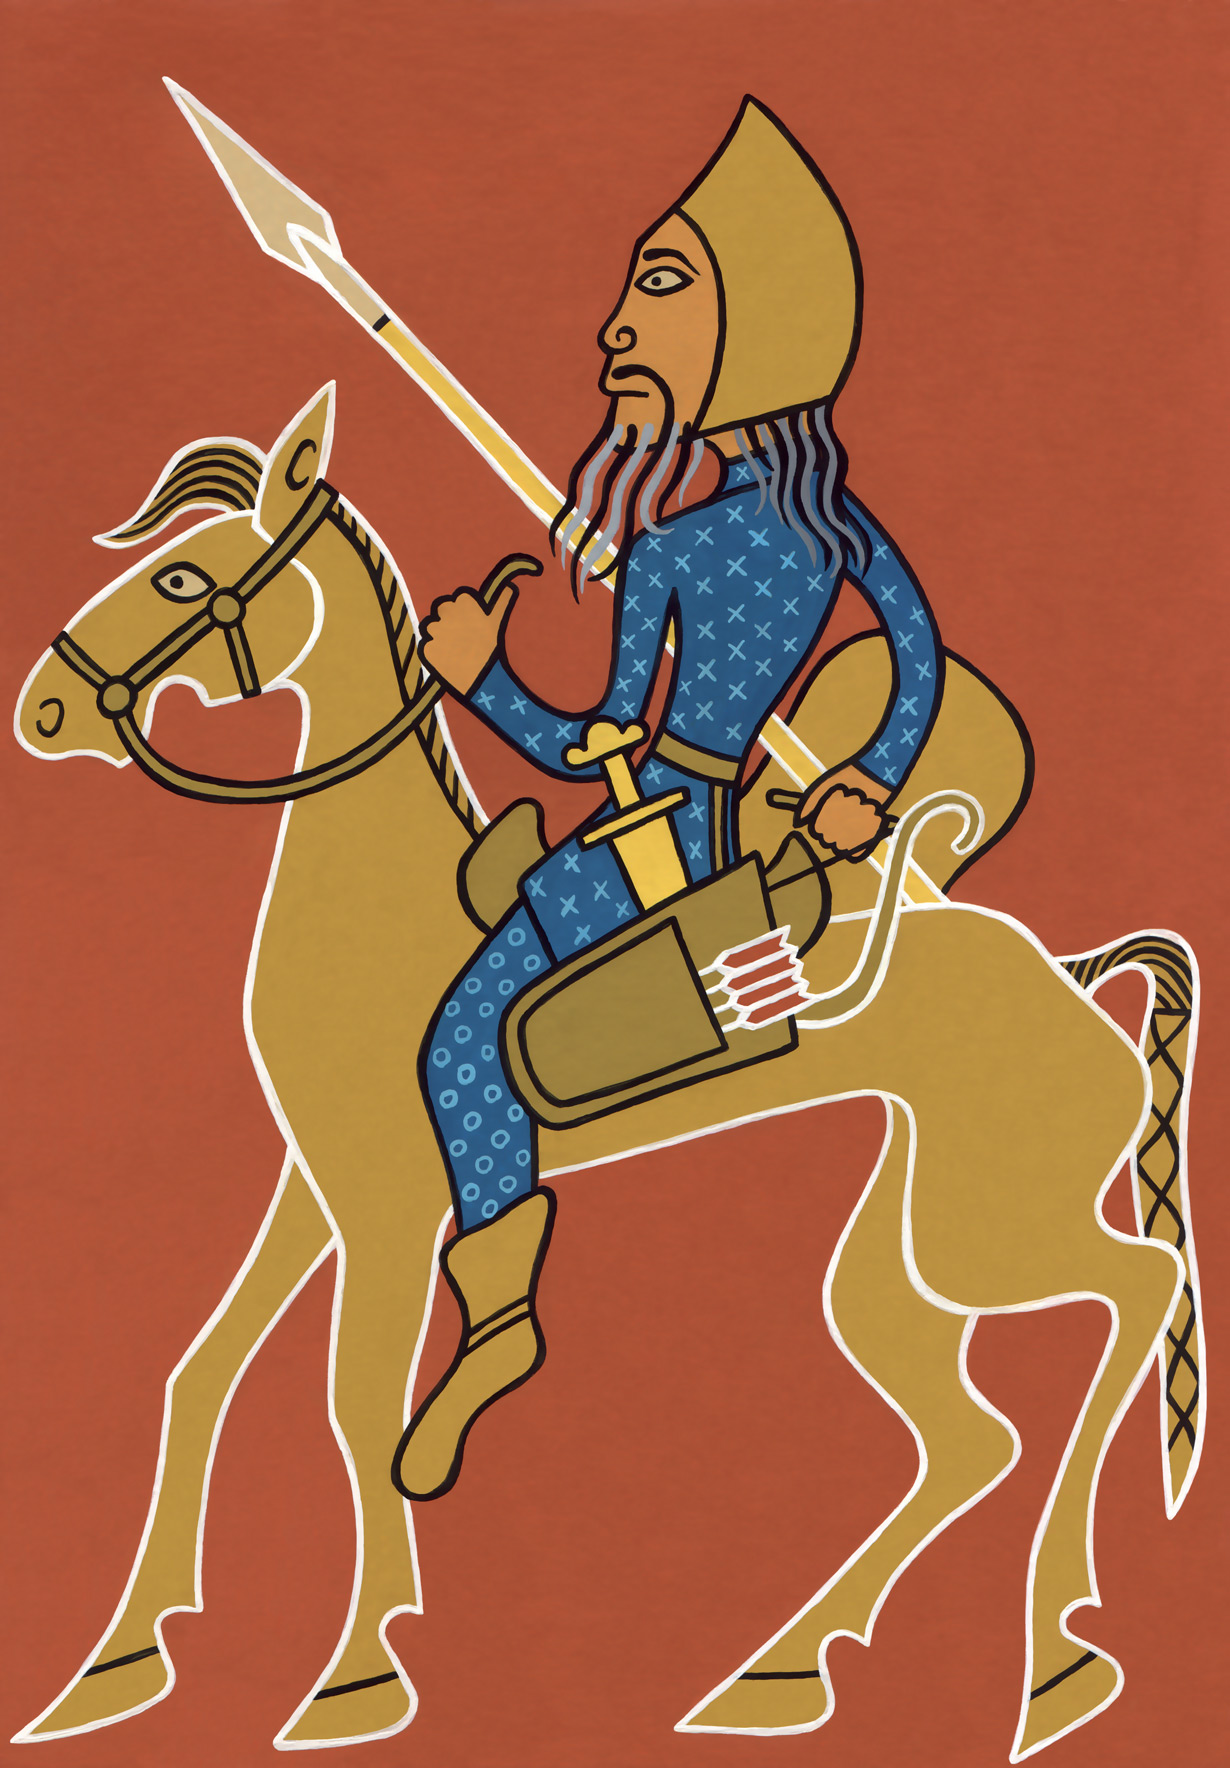 The reconstructed portrait of Attila the Hun